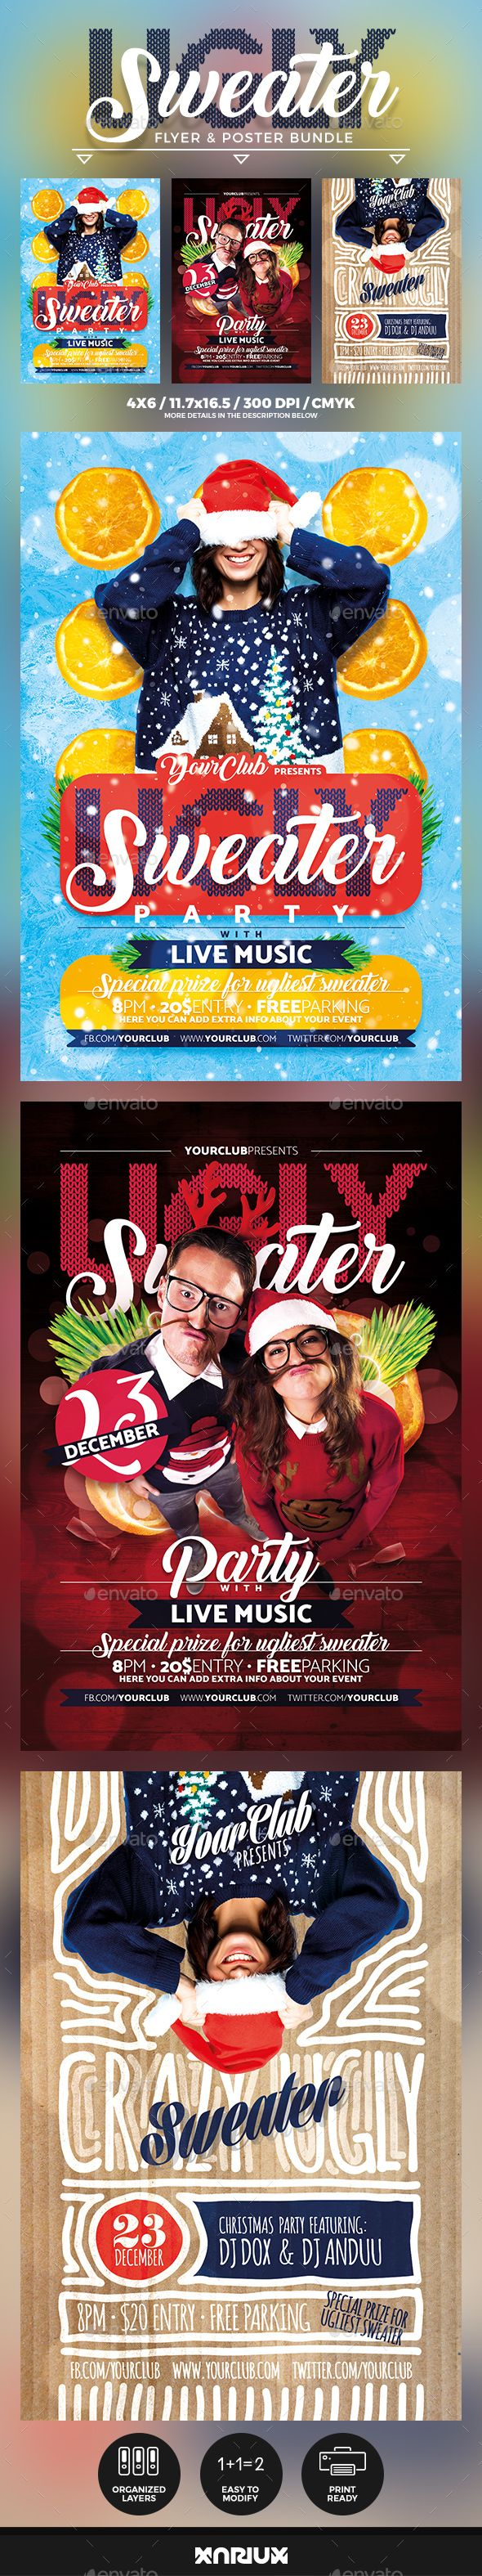 Ugly Sweater Flyer & Poster Bundle Template